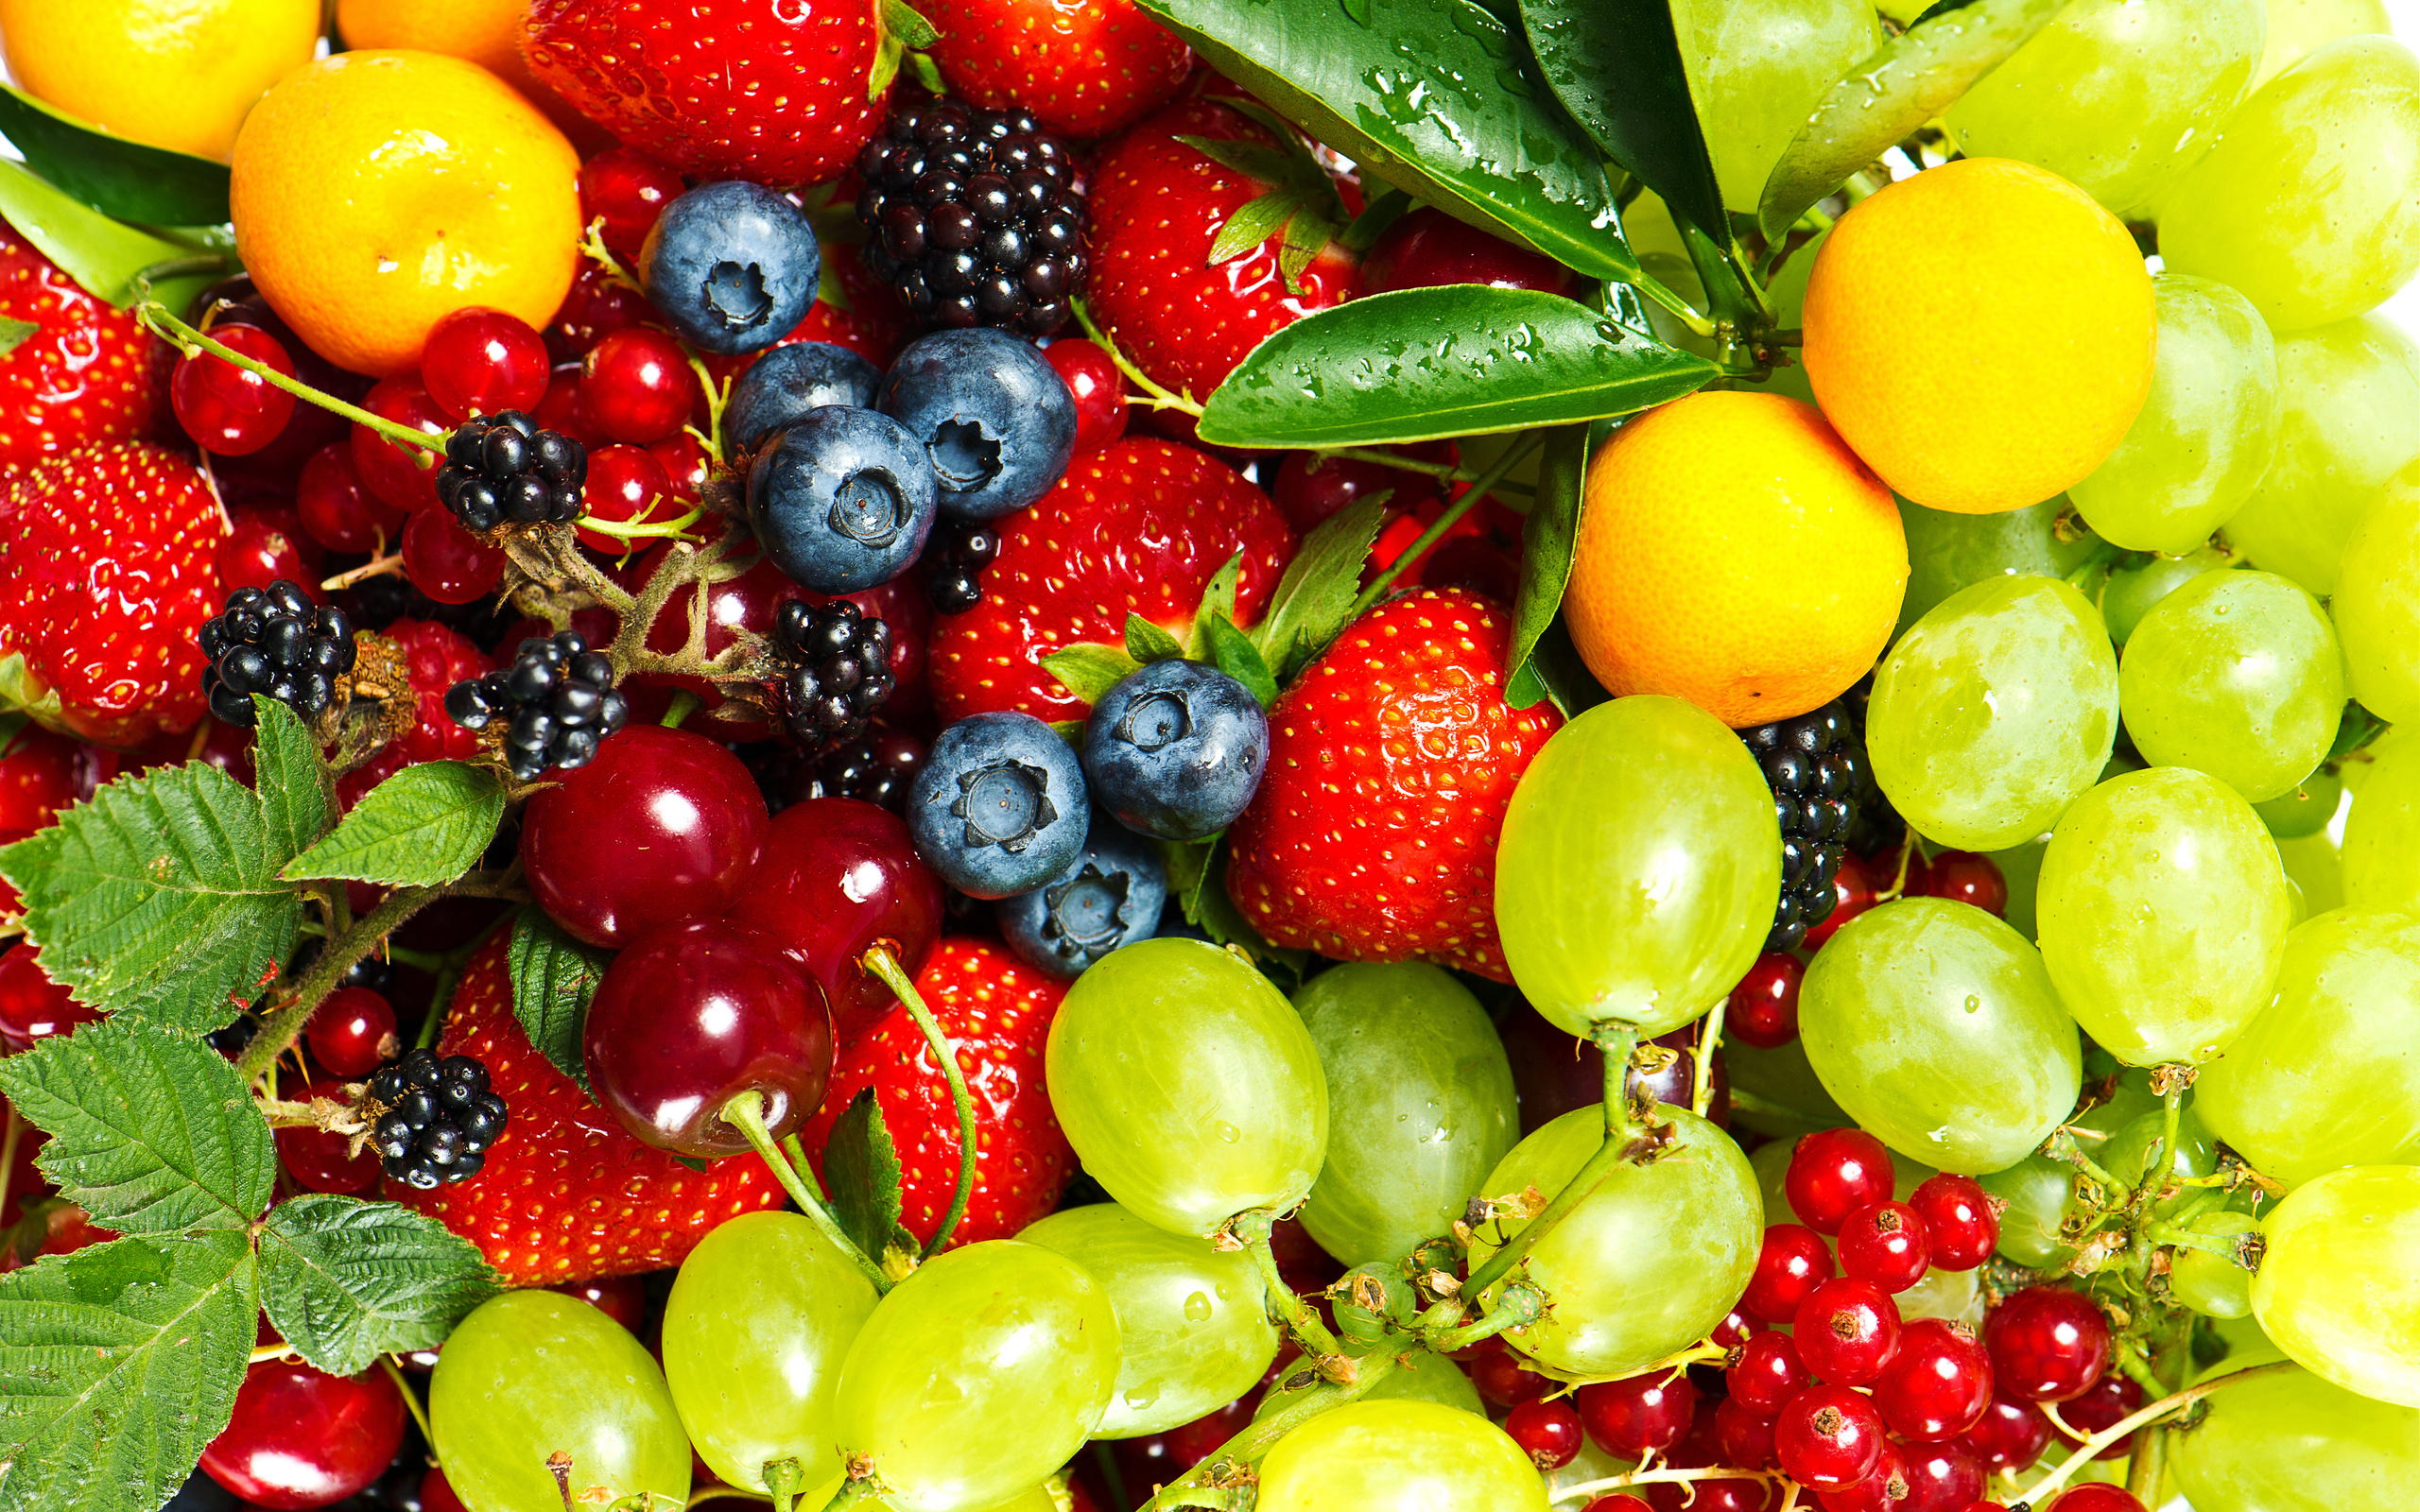 fruit wallpaper 20358 20868 hd wallpapersjpg 2560x1600